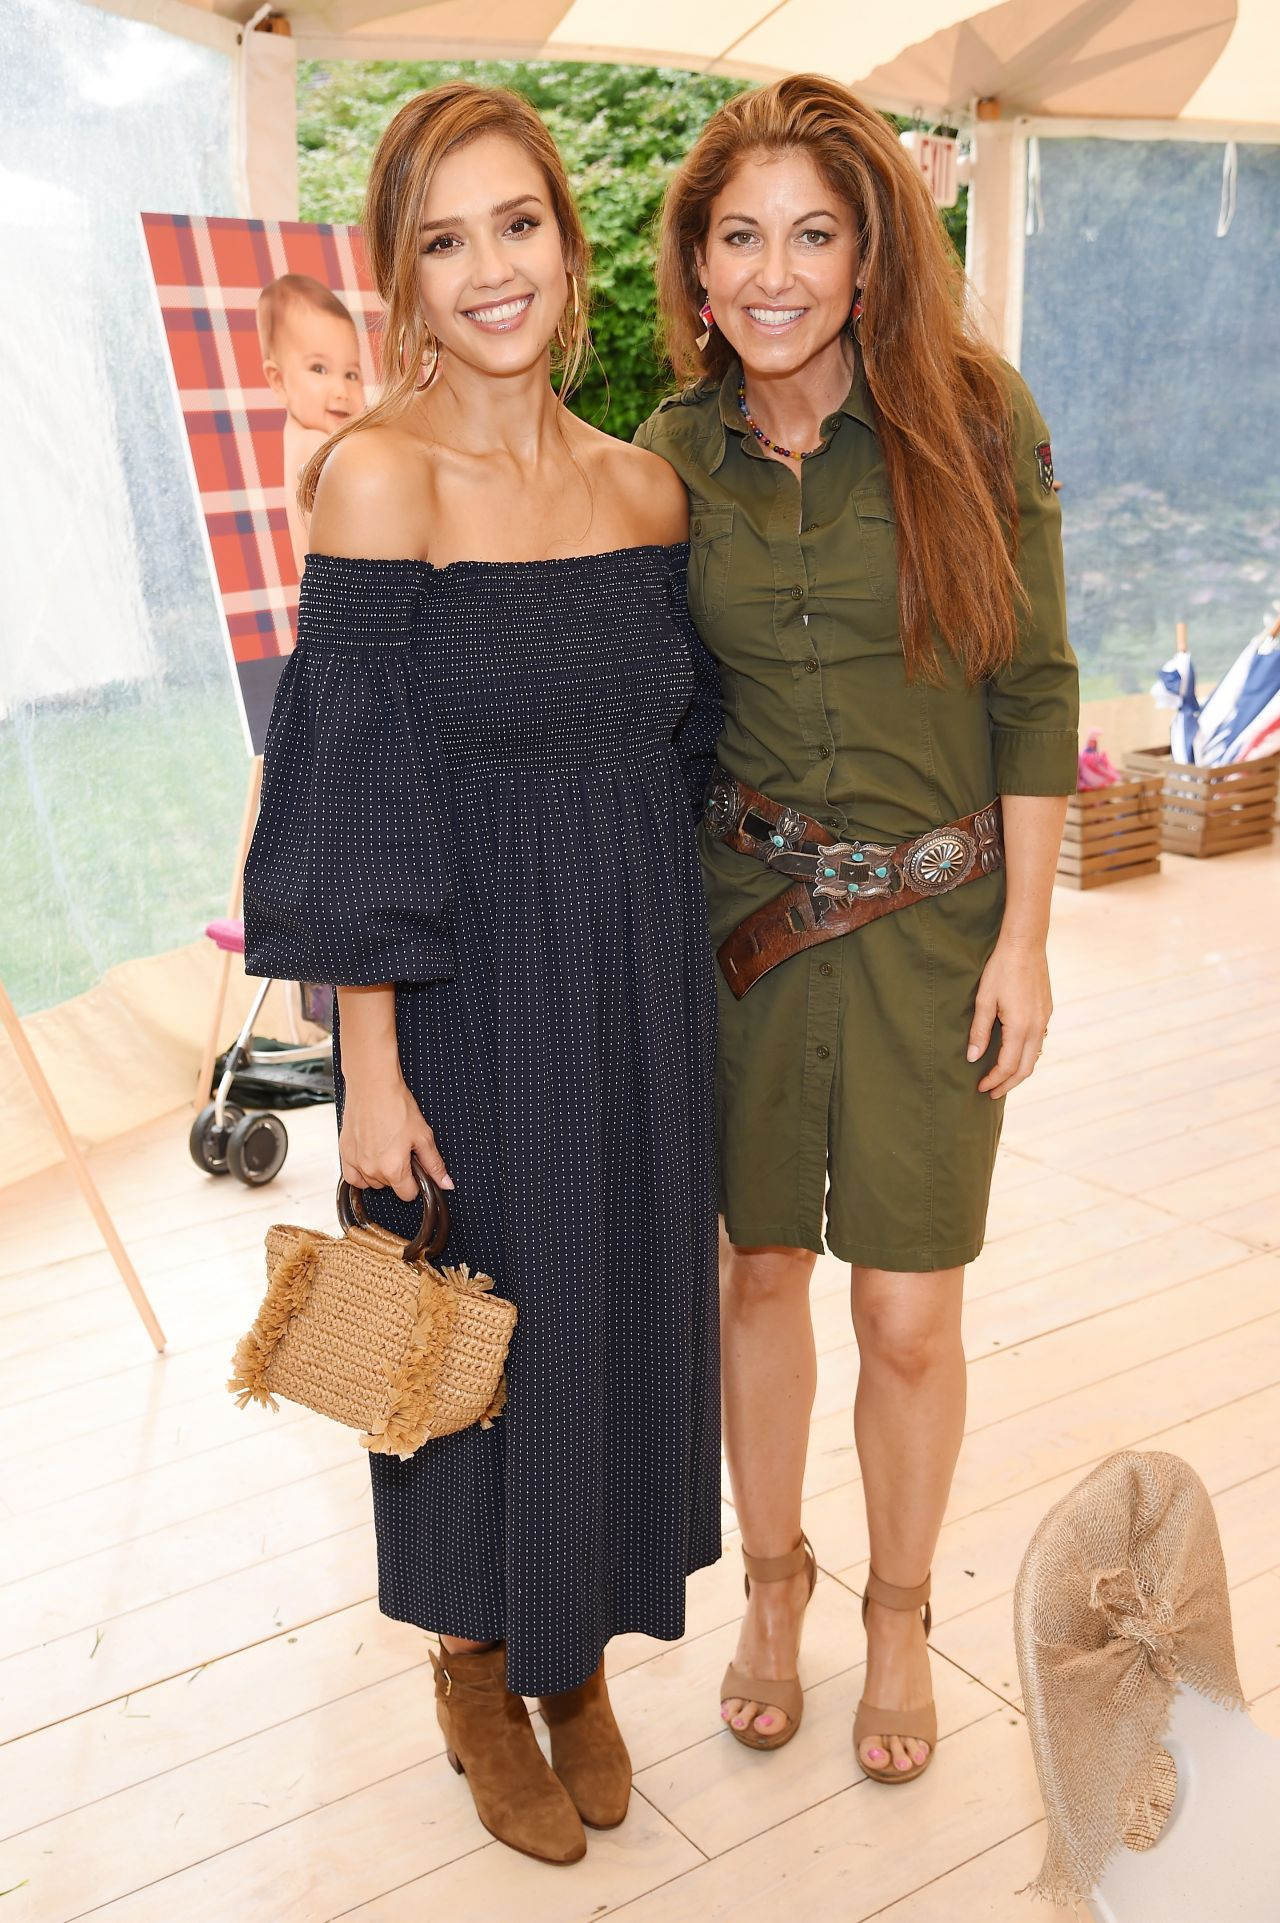 http://celebmafia.com/wp-content/uploads/2017/08/jessica-alba-the-great-adventure-in-east-hampton-new-york-08-05-2017-4.jpg